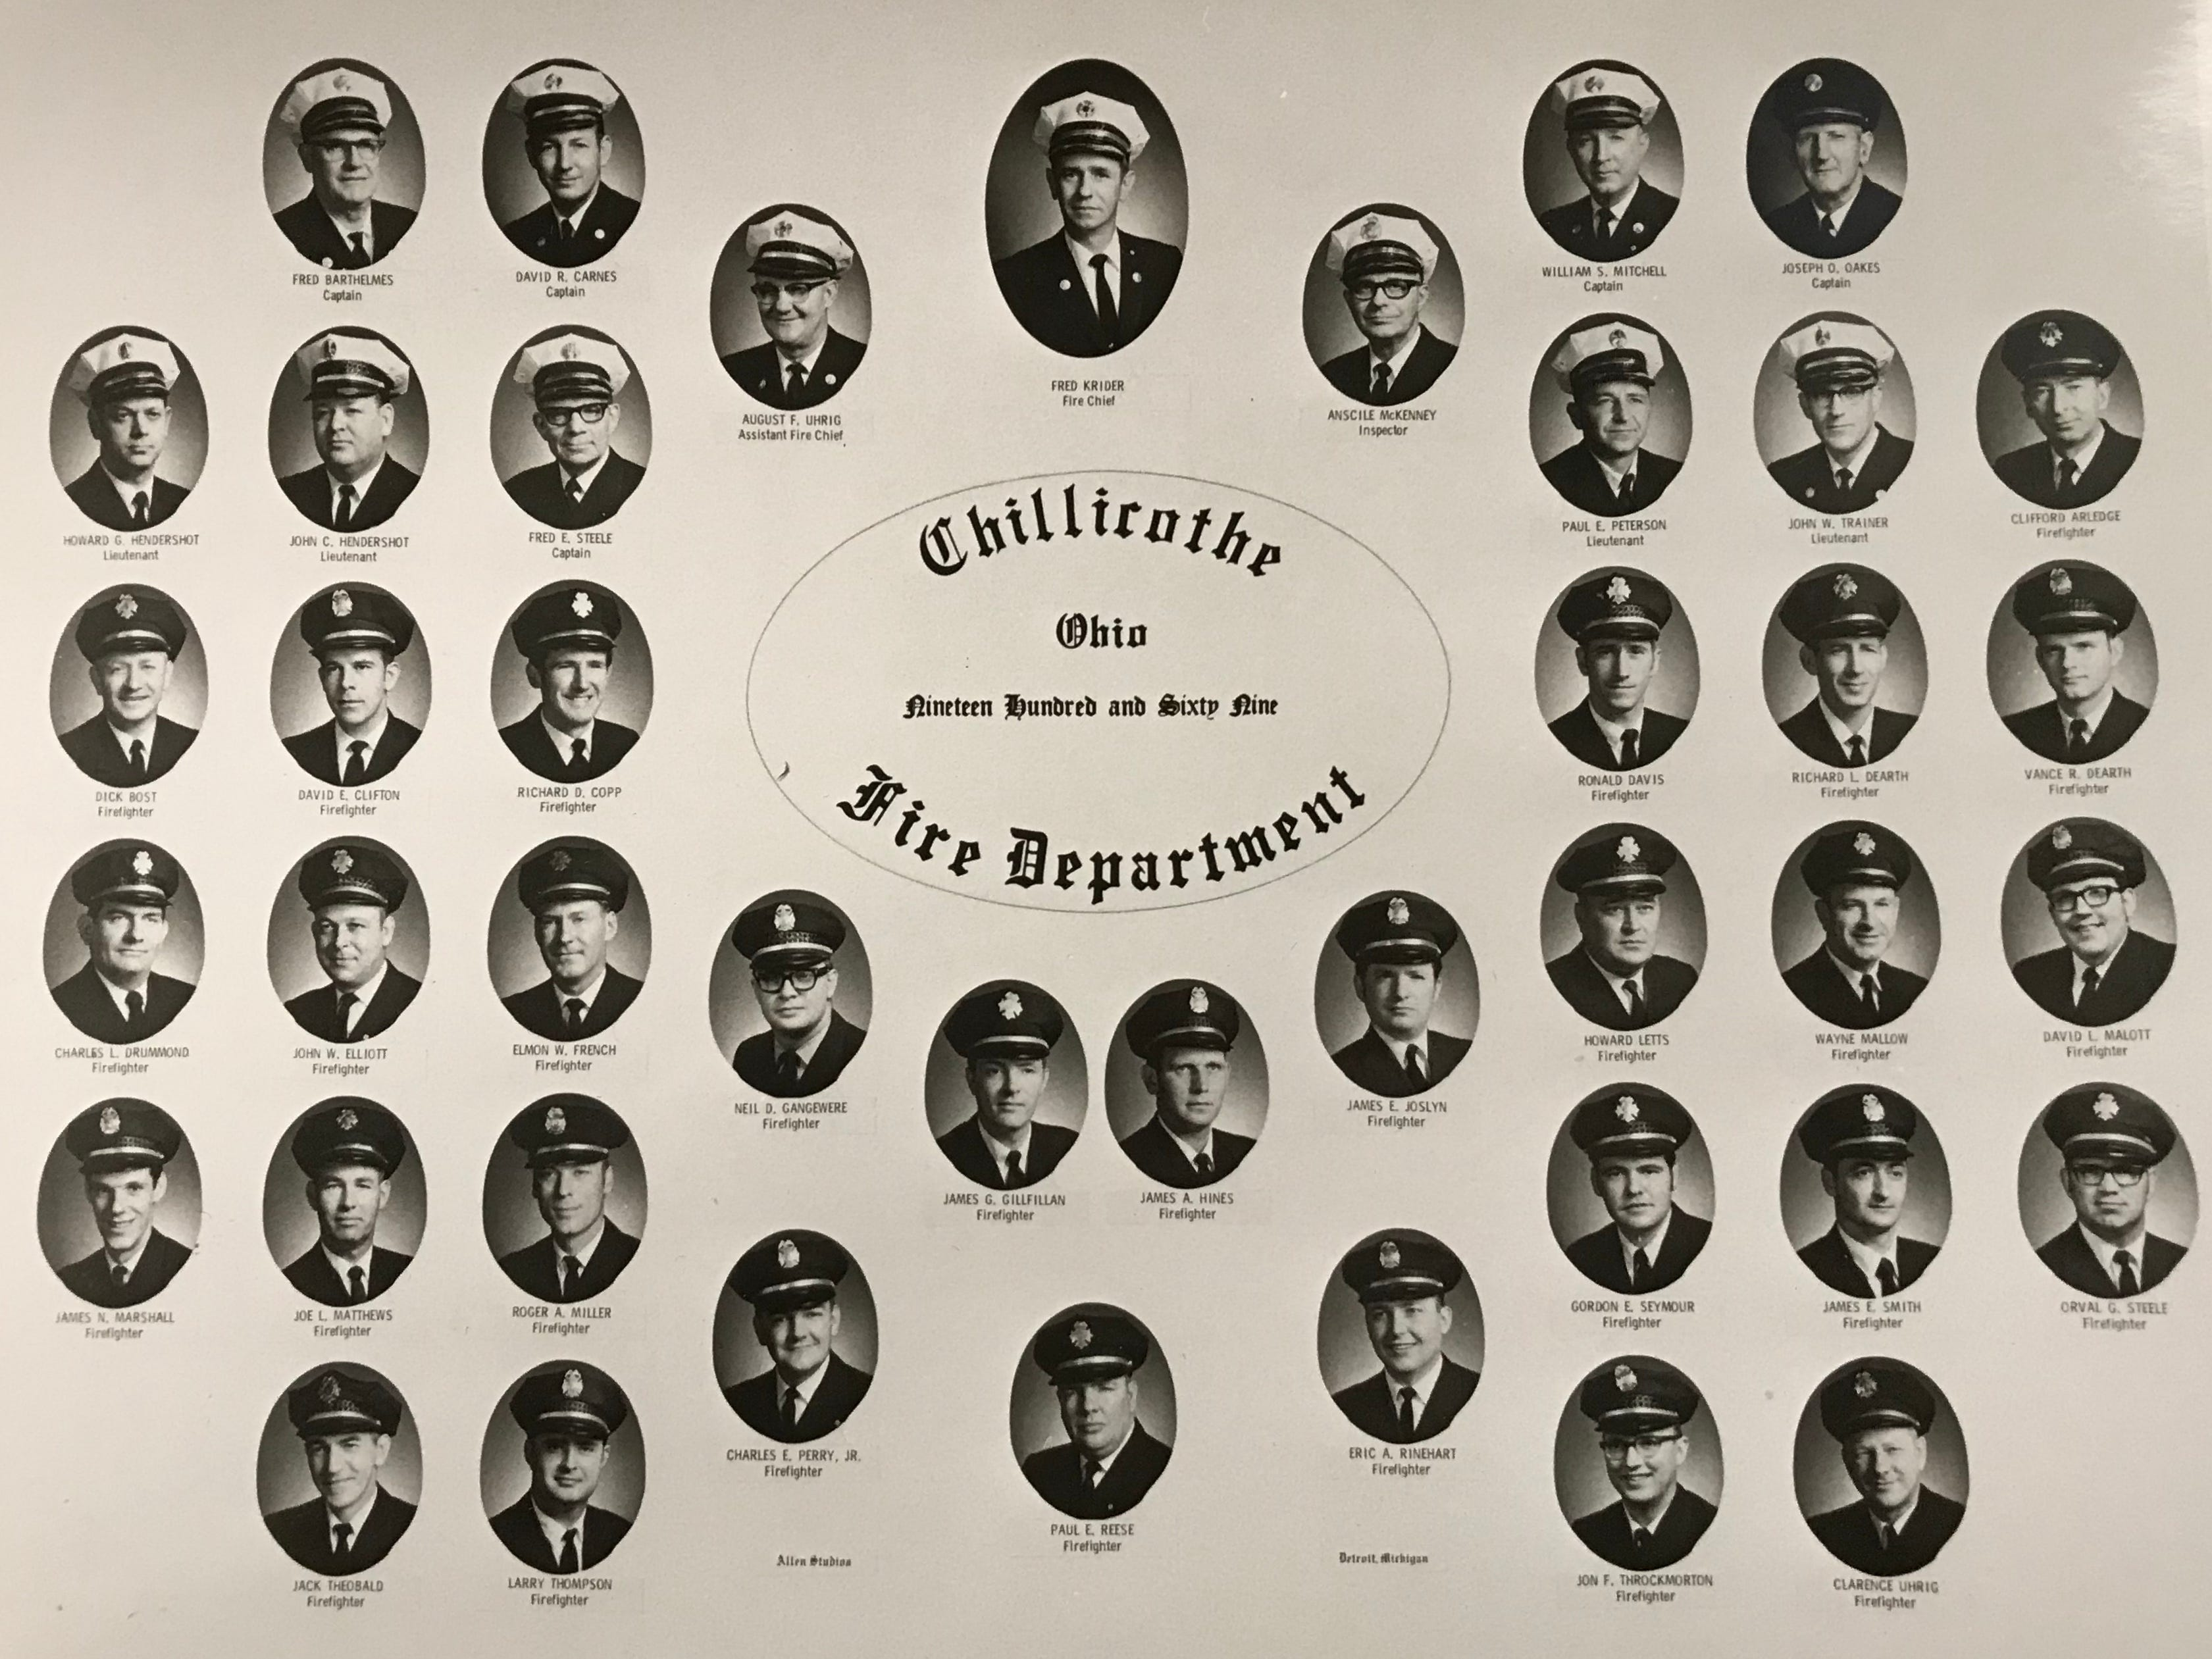 A composite of the members of the Chillicothe Fire Department in 1965.